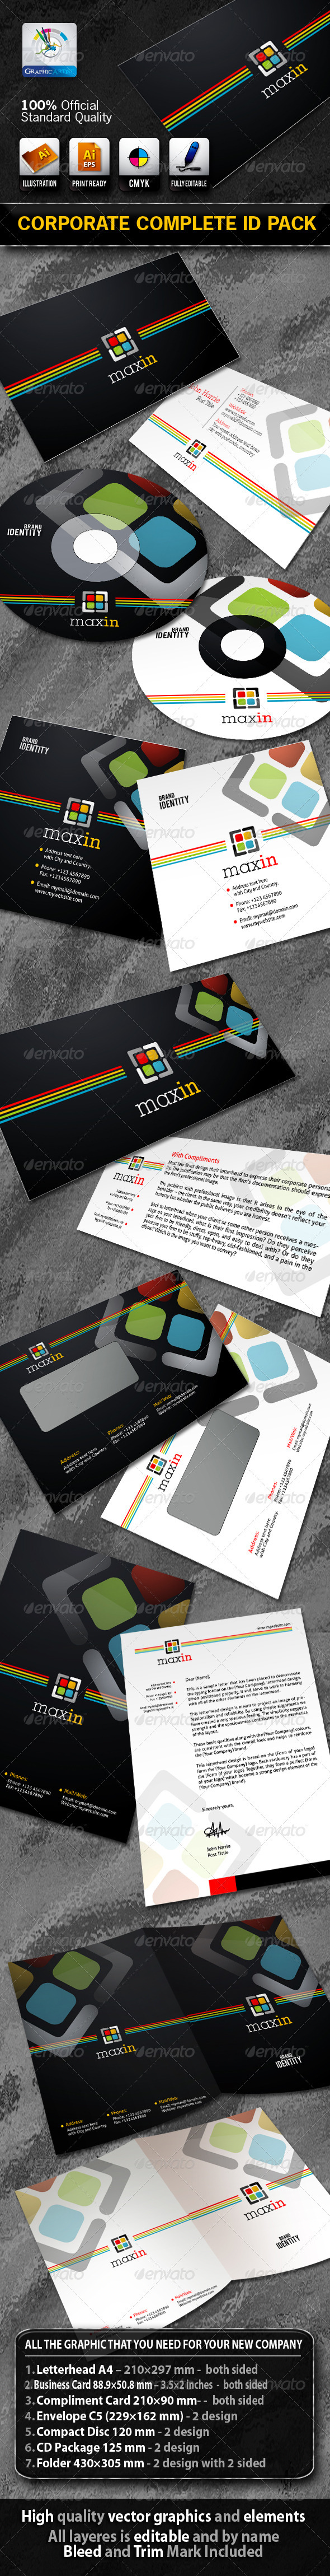 MaxIn Business Corporate ID Pack With Logo - Stationery Print Templates